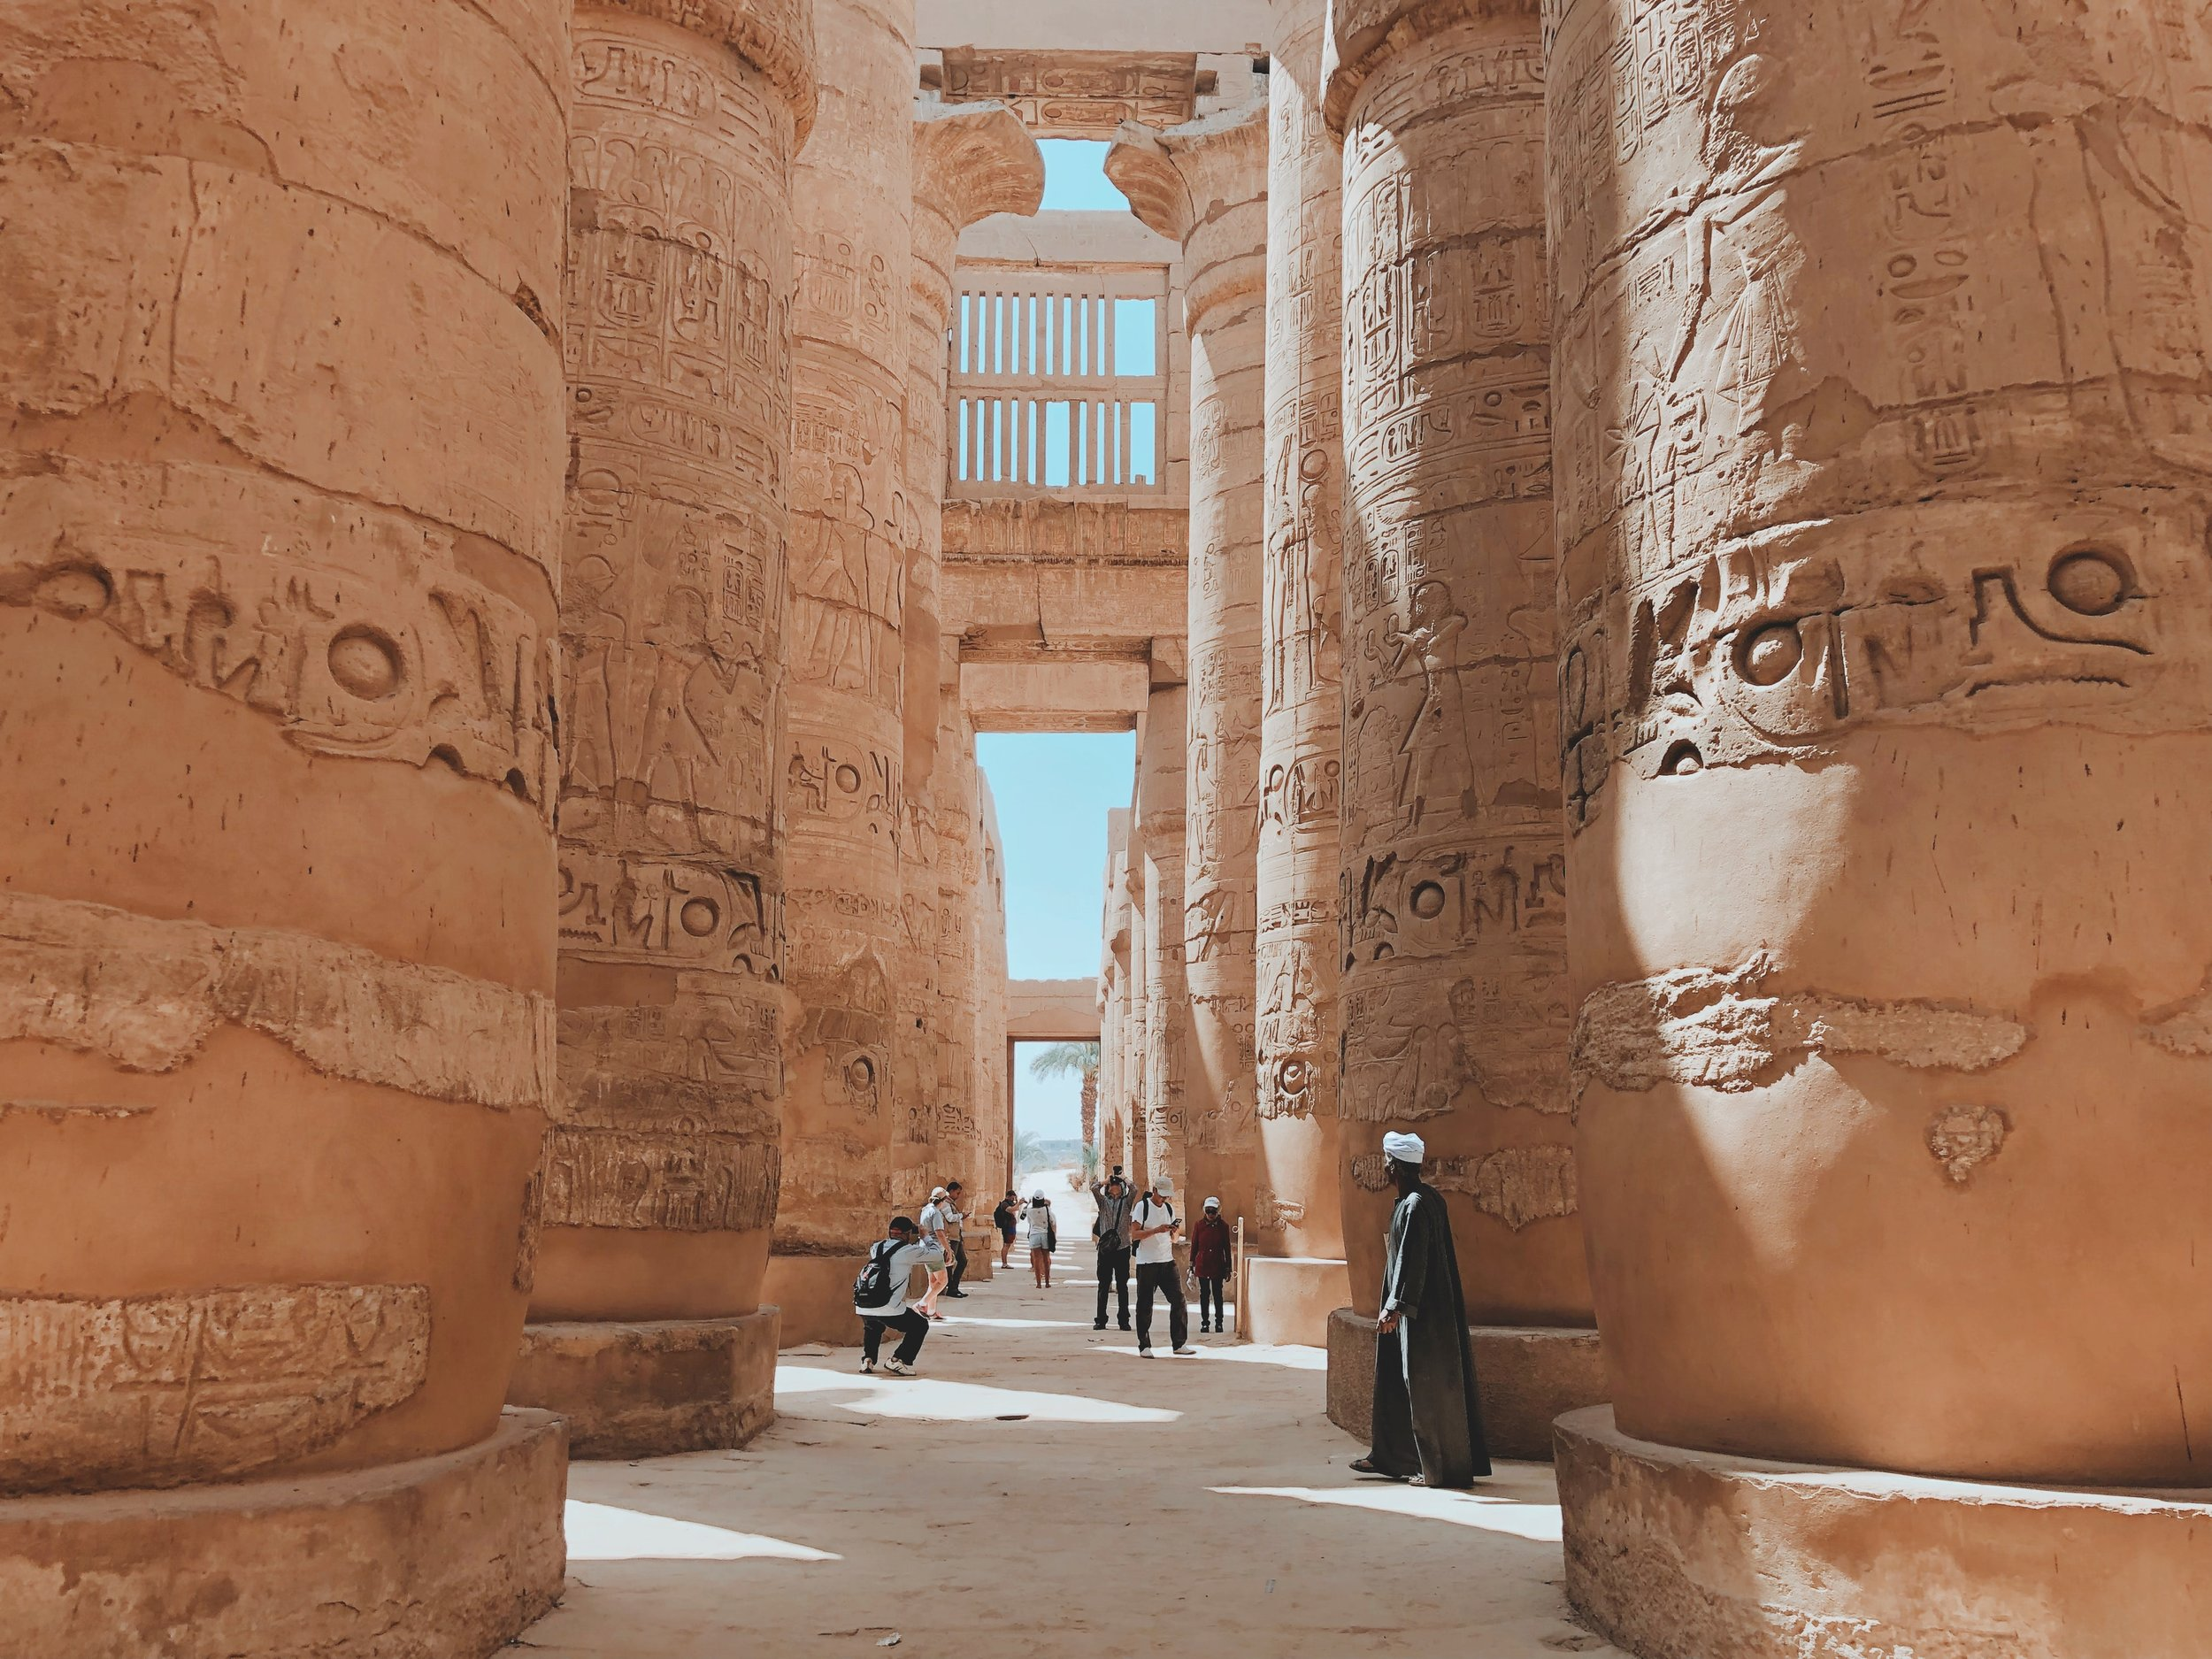 The best places to go in Egypt.